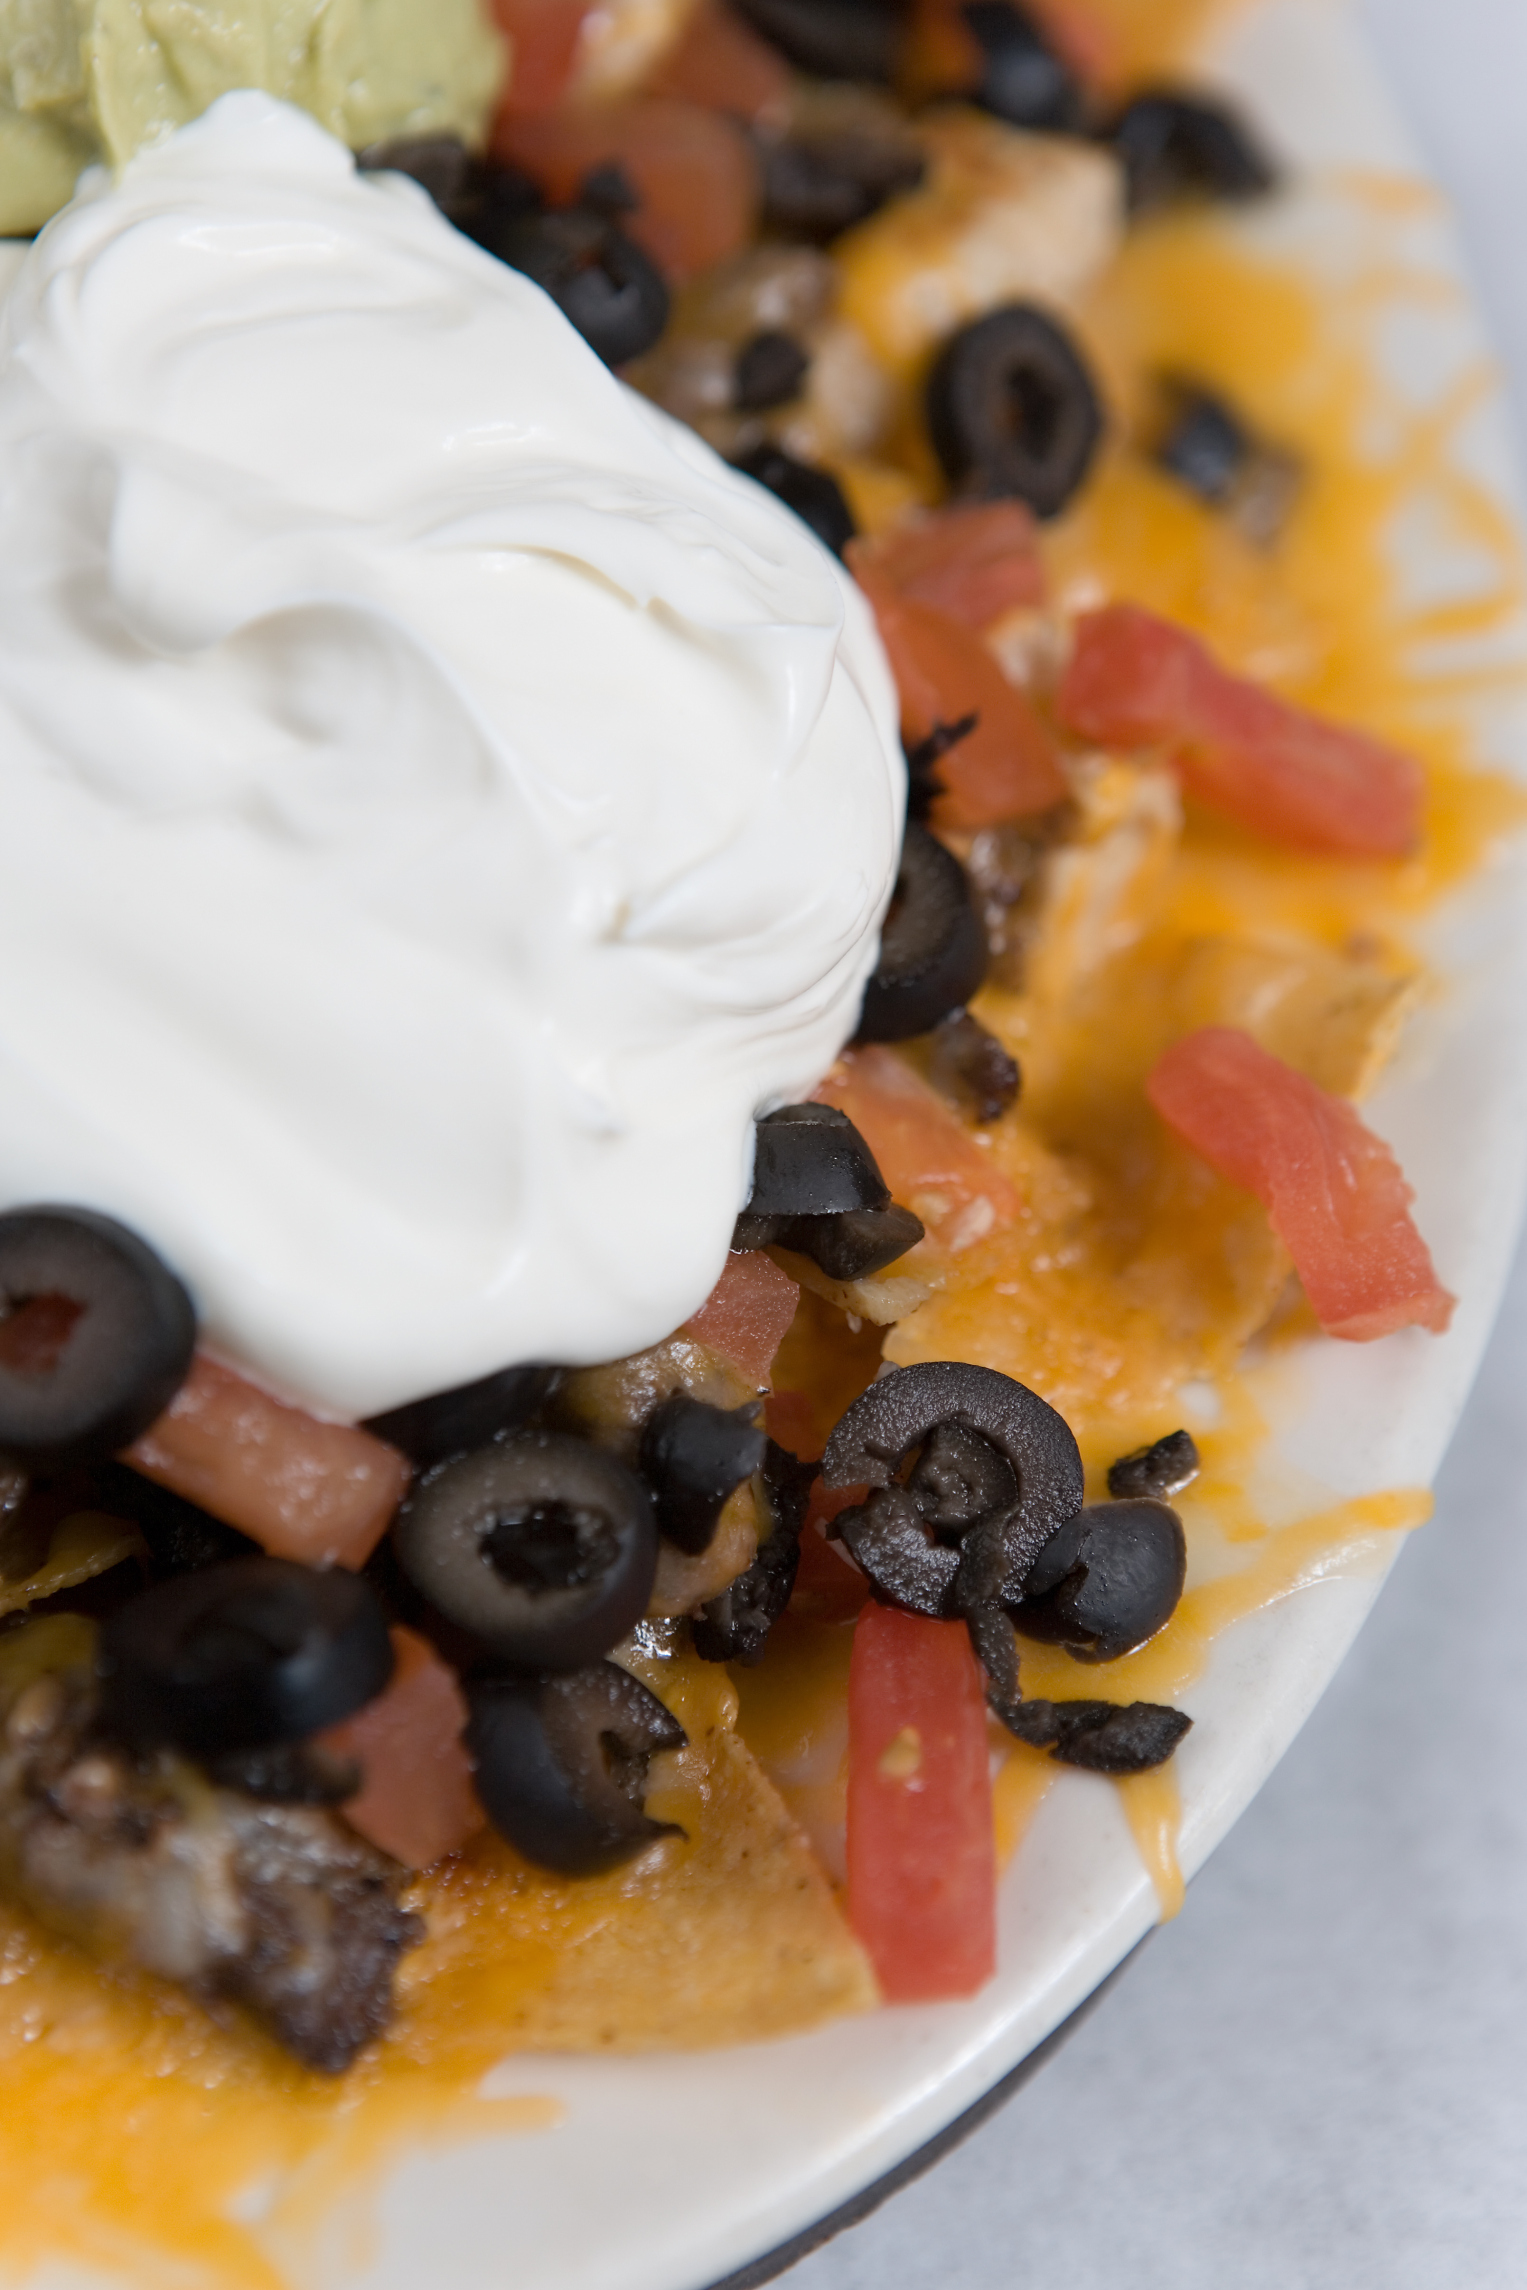 Skip the sour cream if you're lactose intolerant.